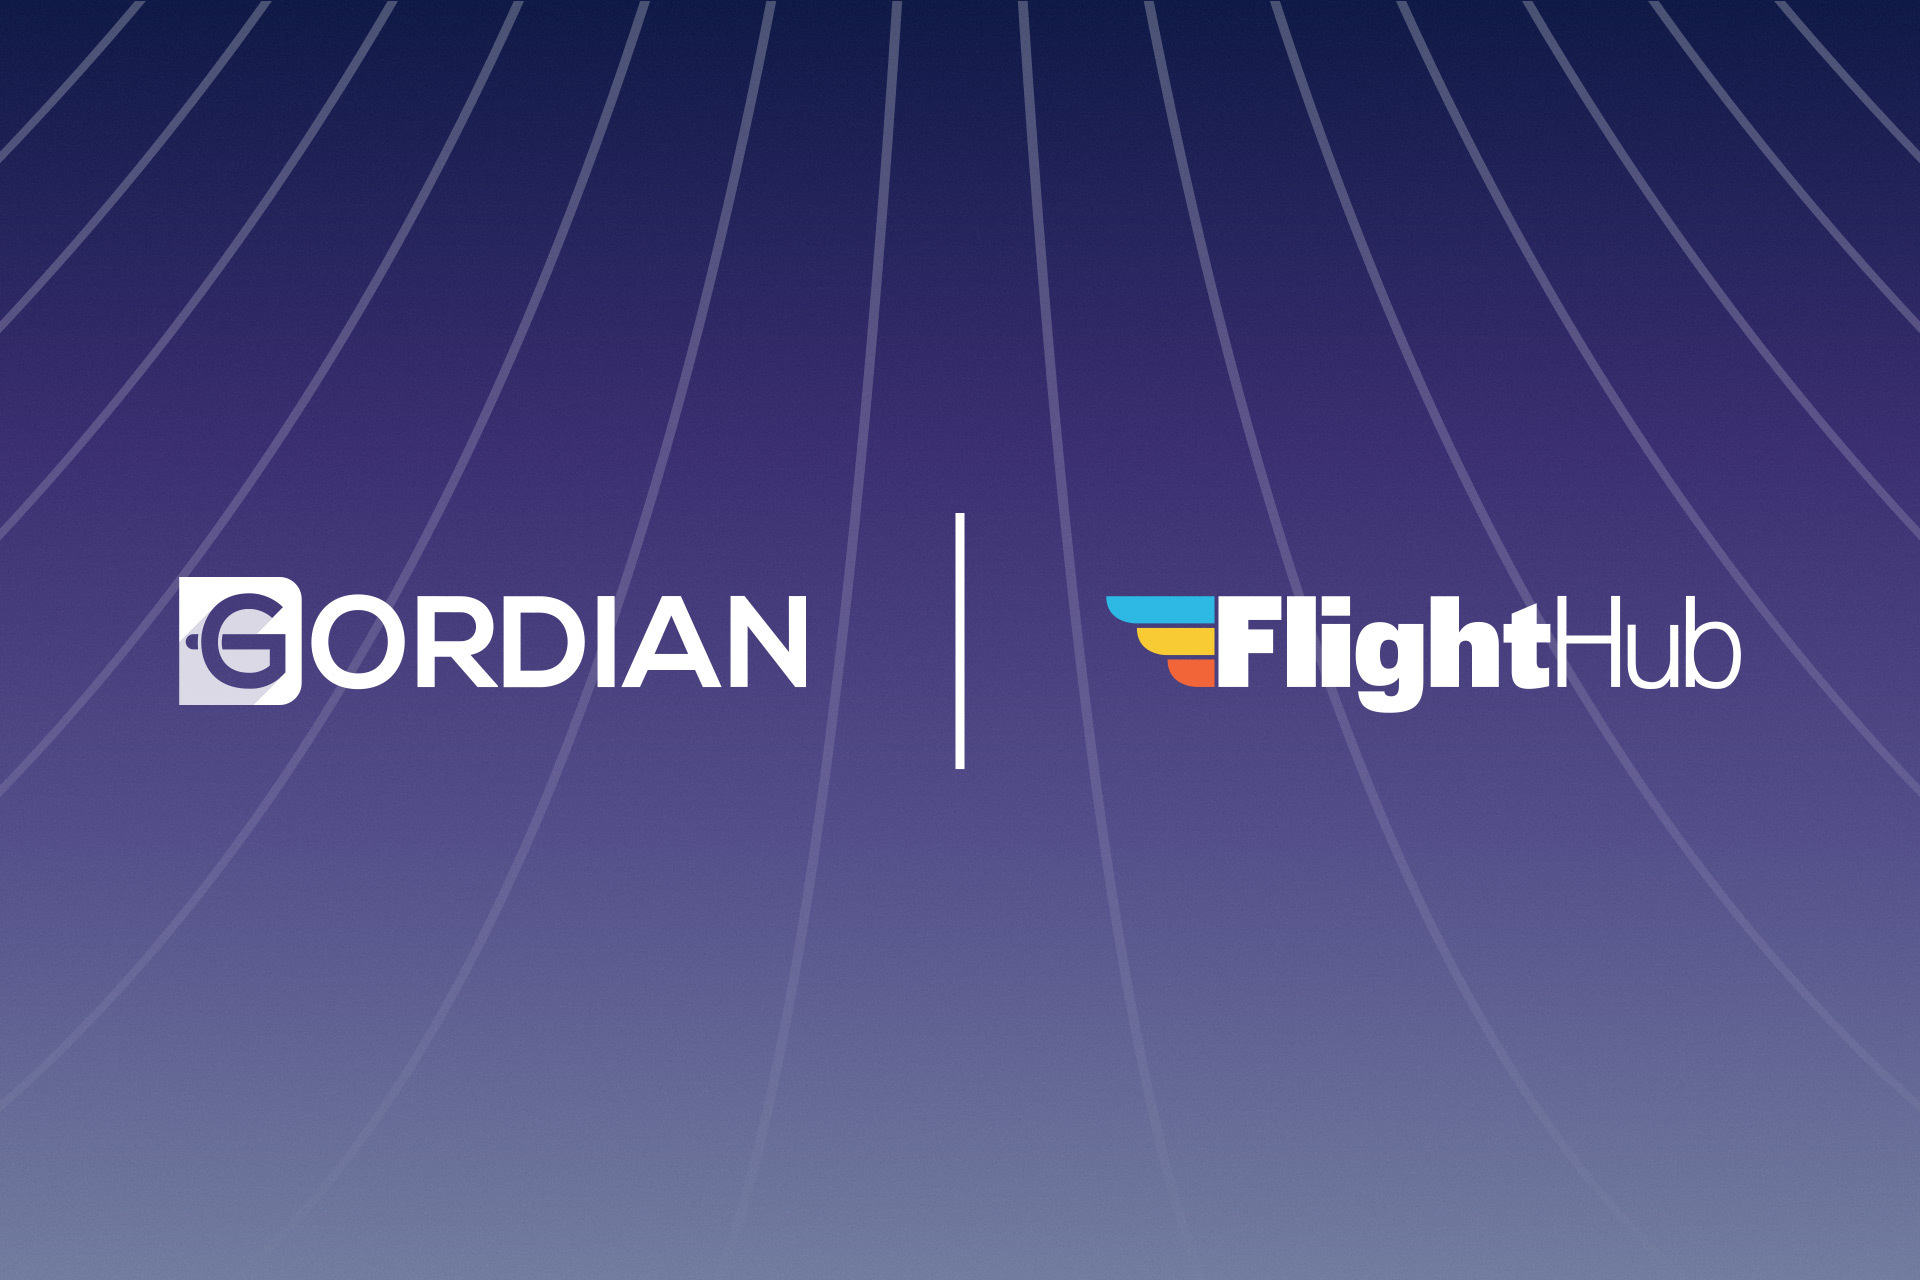 FlightHub expands partnership with Gordian Software after successful pilot program